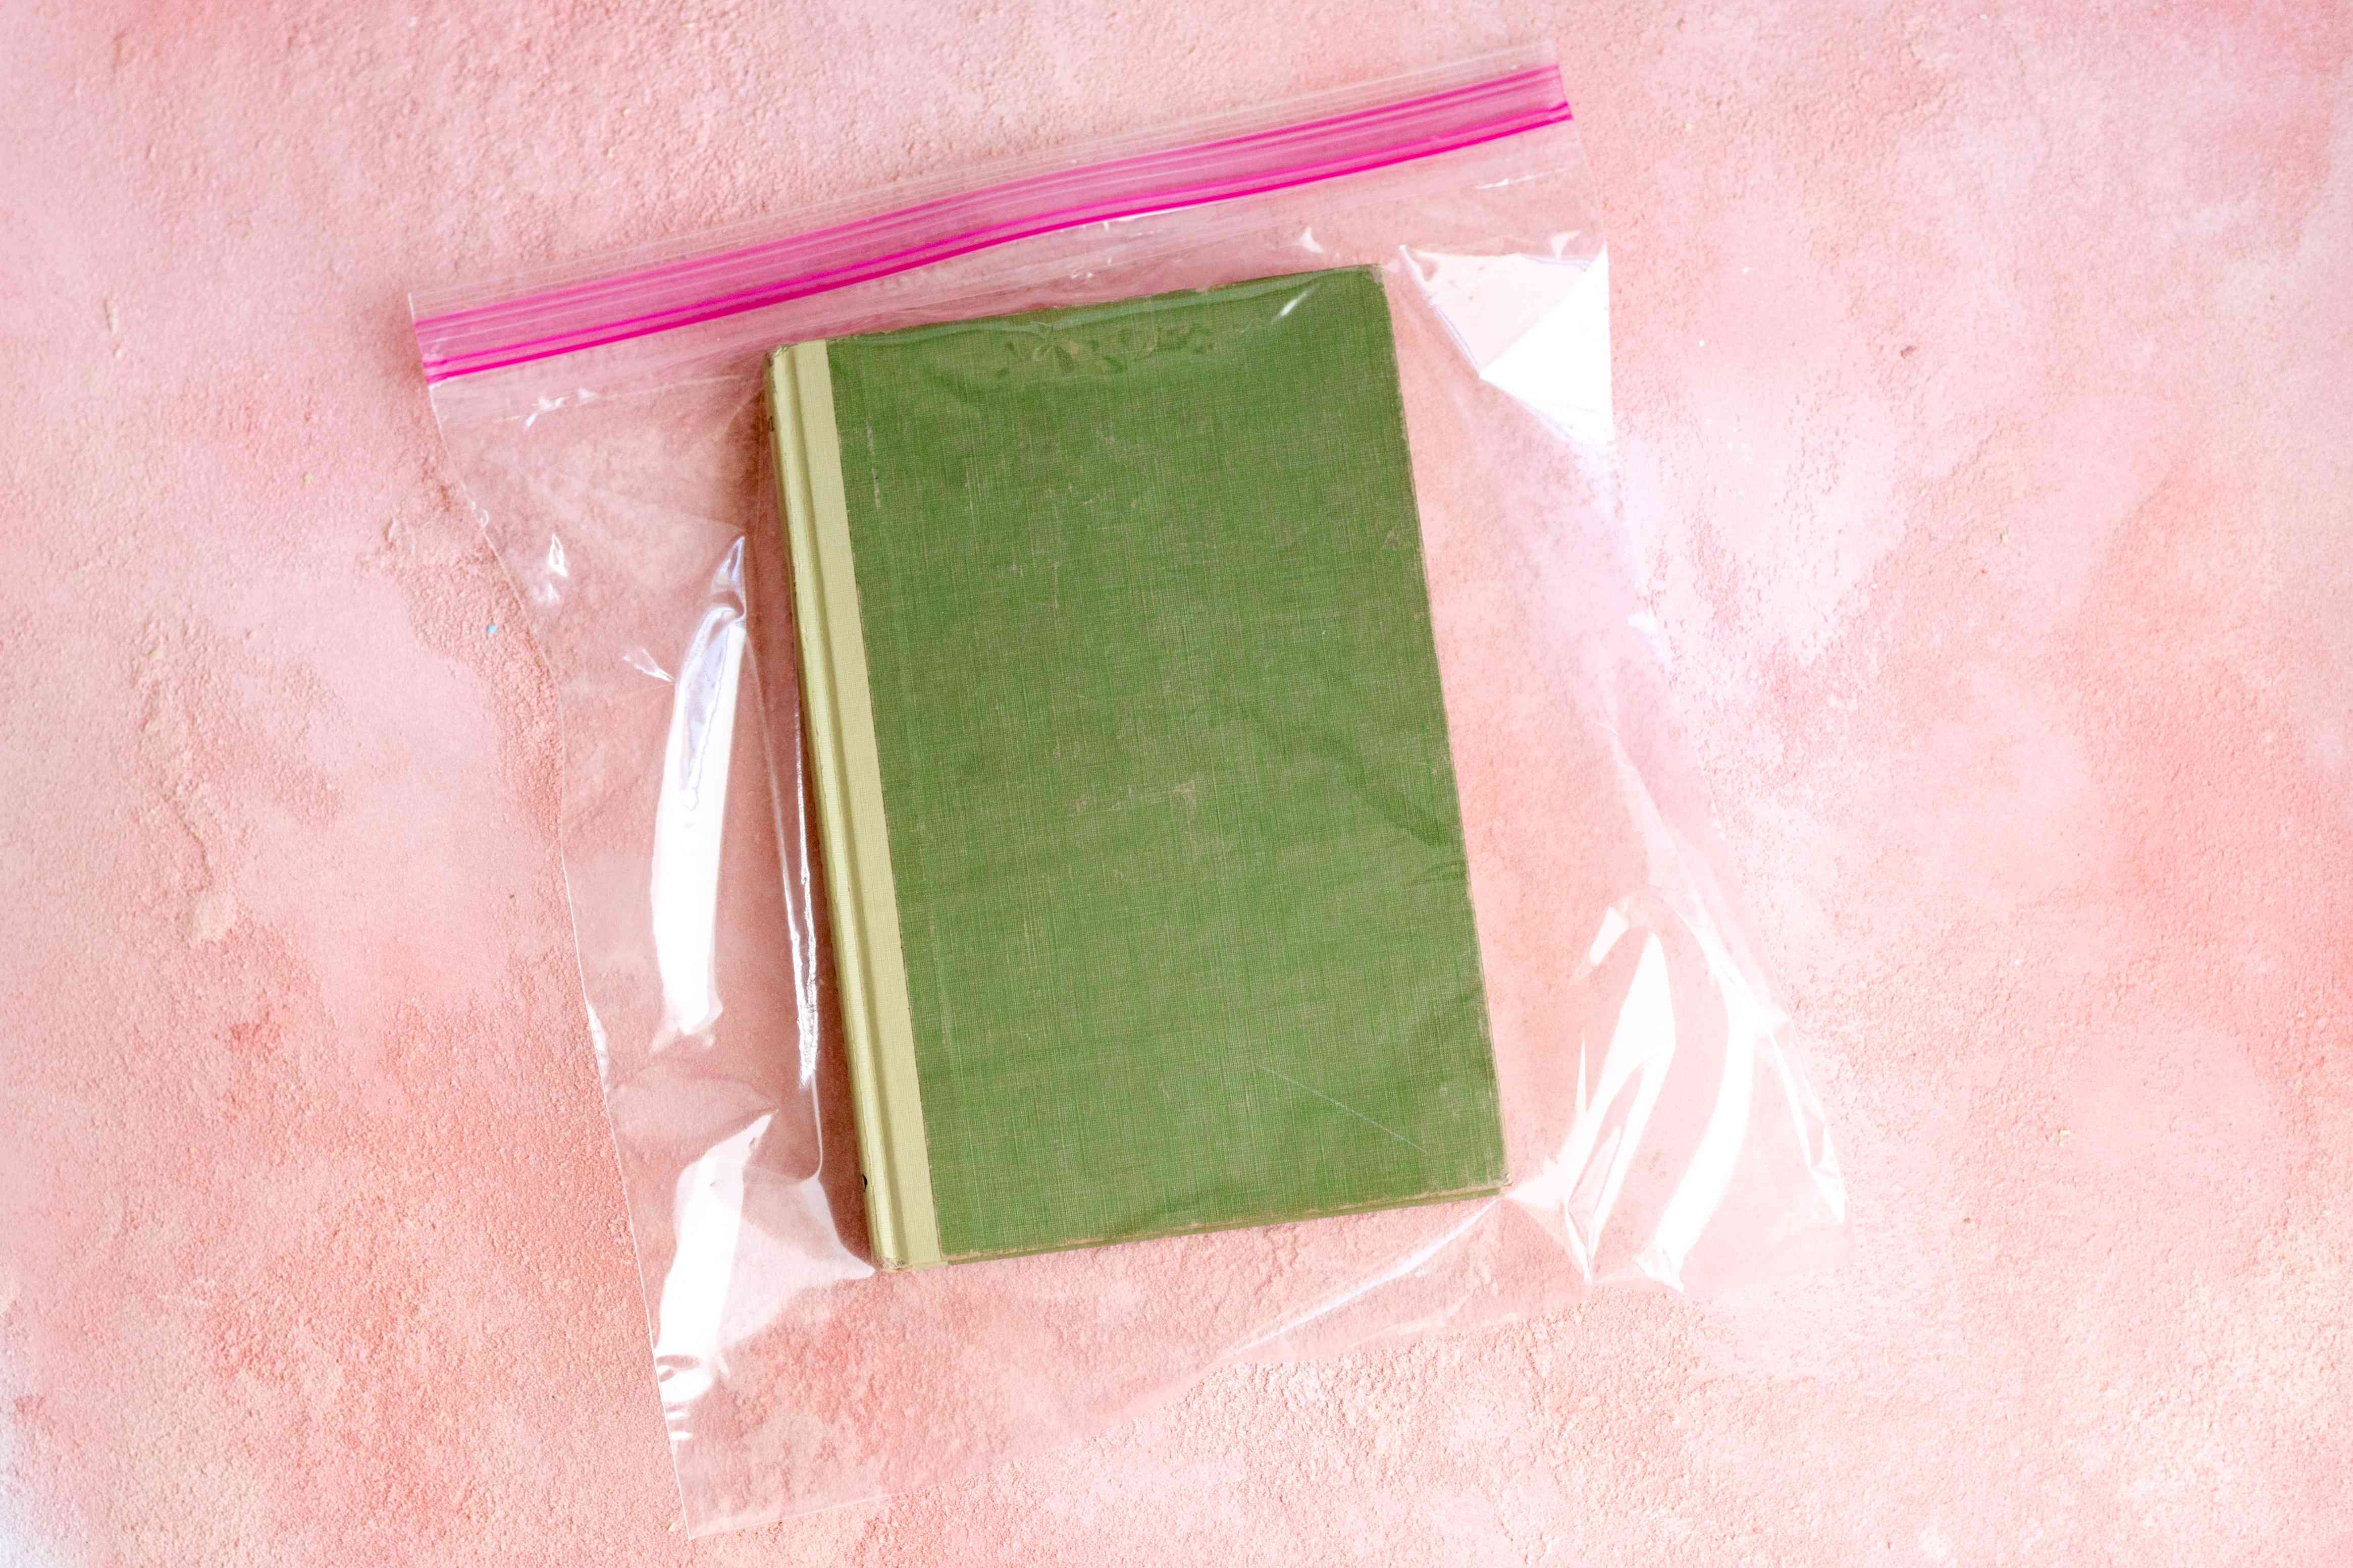 a book placed in a plastic storage bag